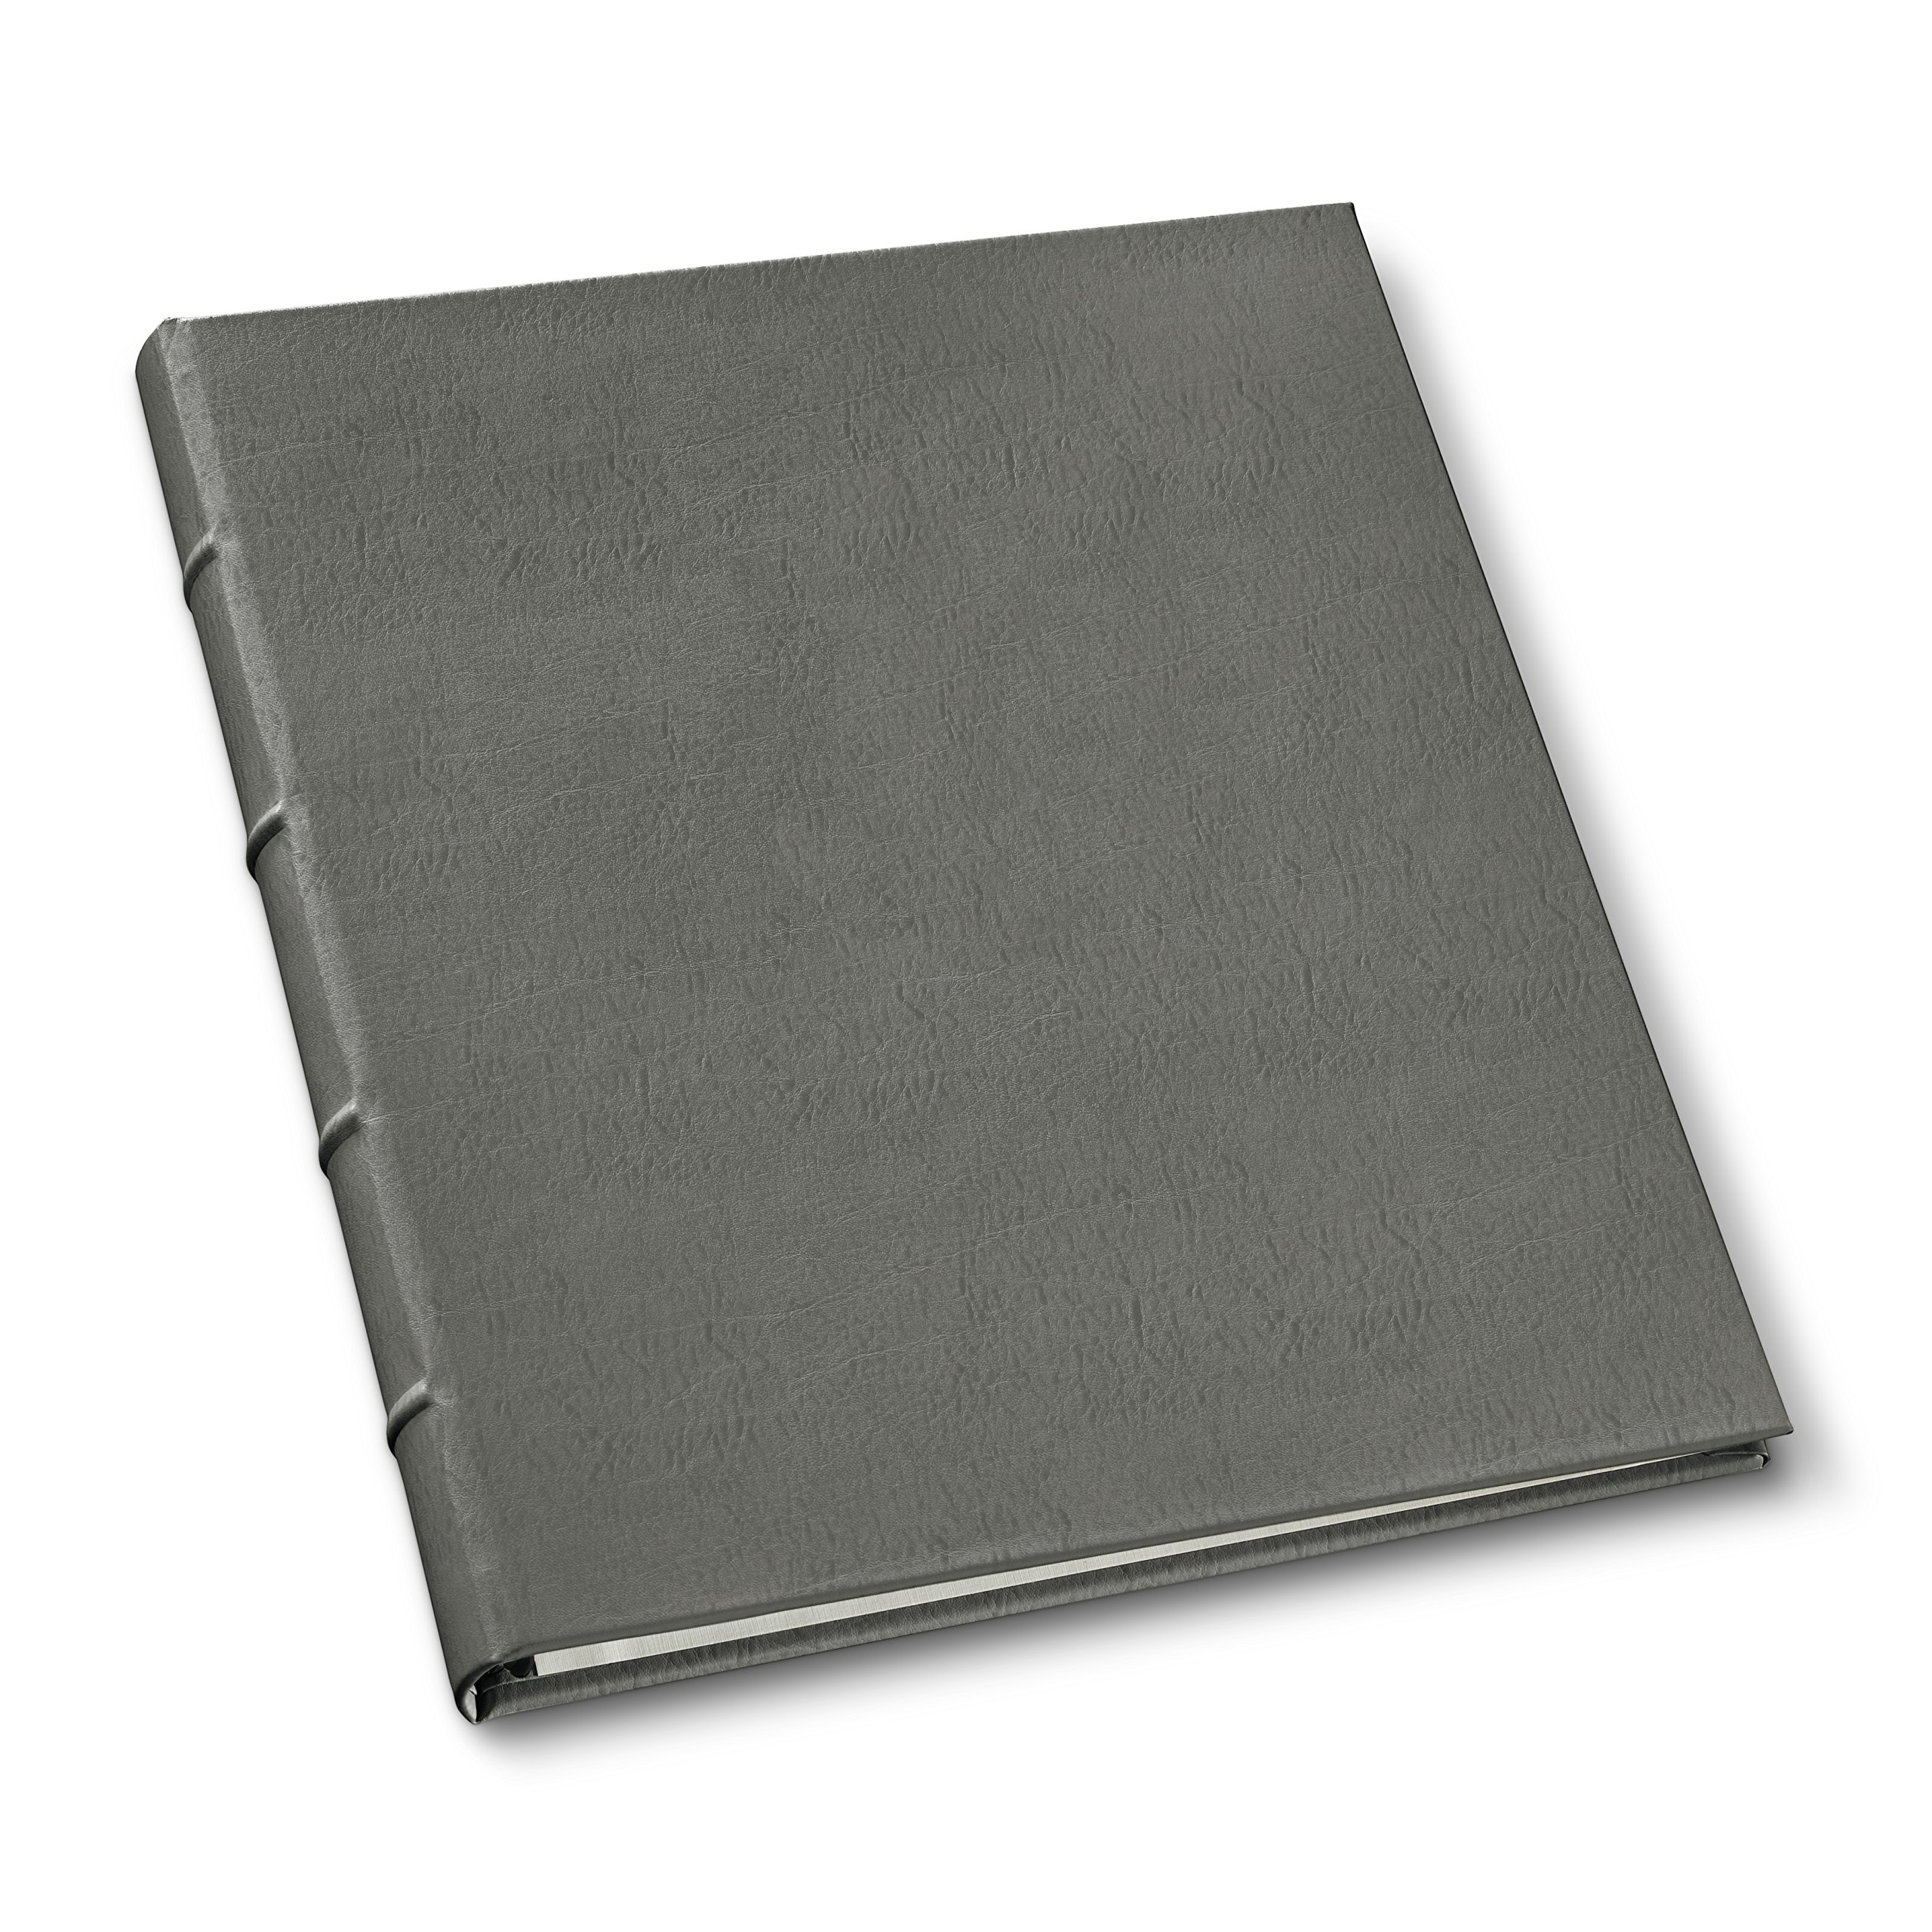 Gallery Leather Presentation Binder .75'' Hubbed Spine Freeport Slate by Gallery Leather